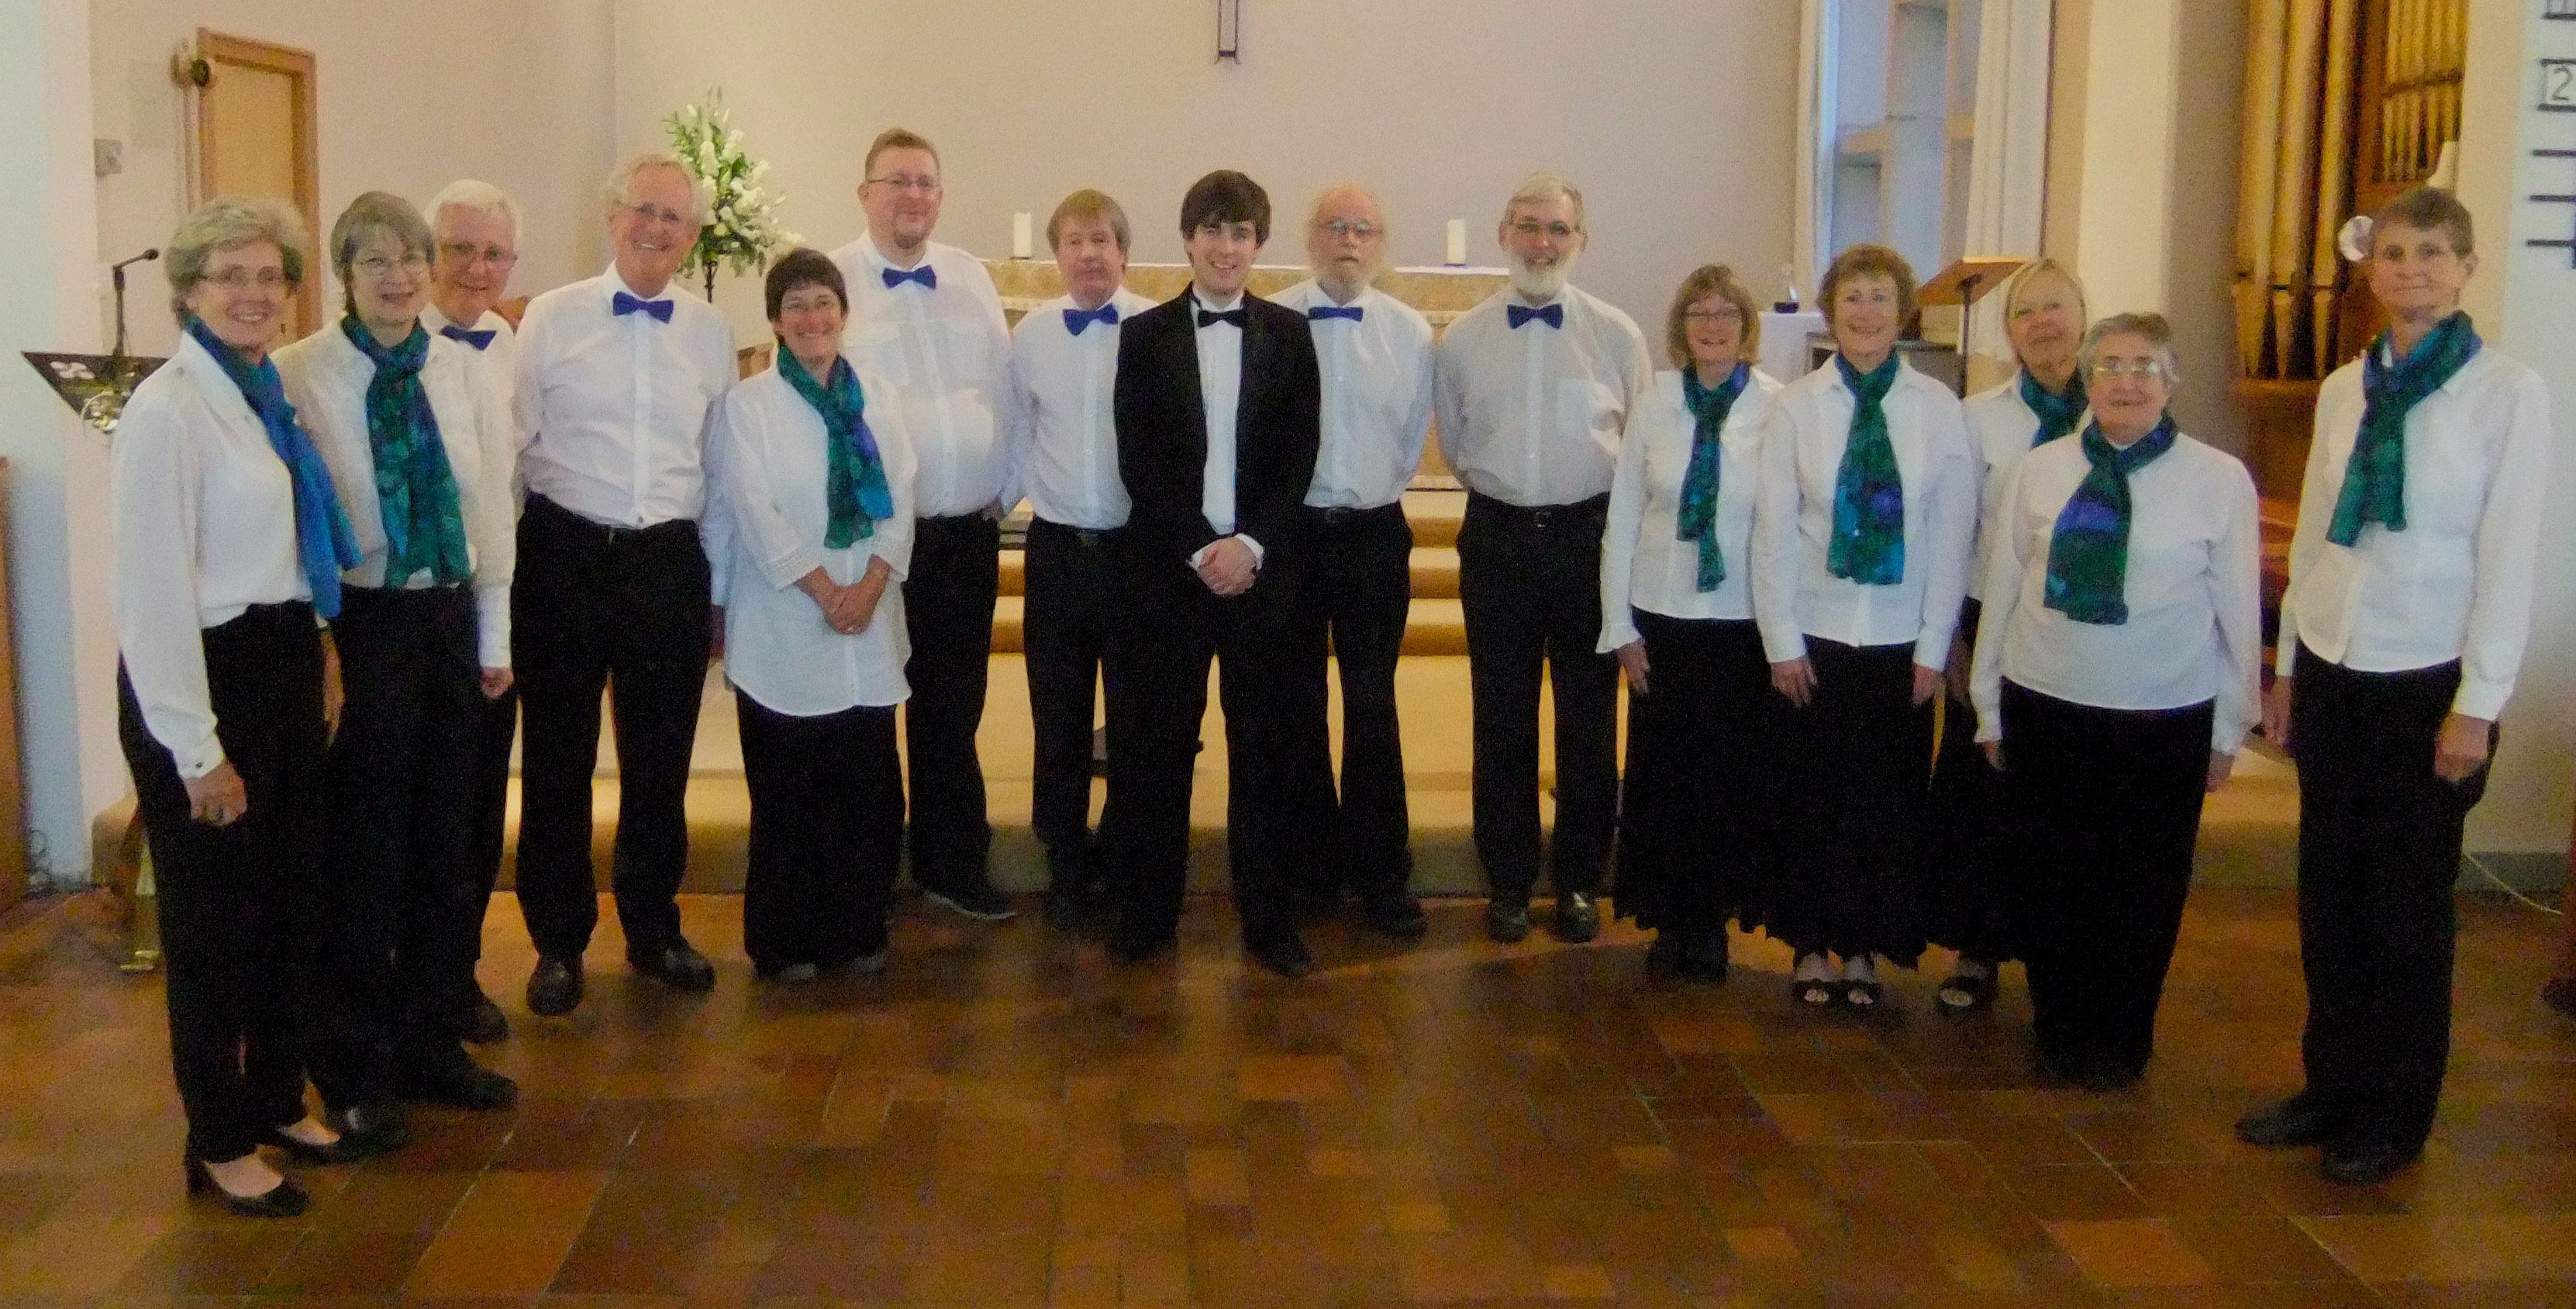 The Crown Singers with Paul Burke after their June 2014 concert.